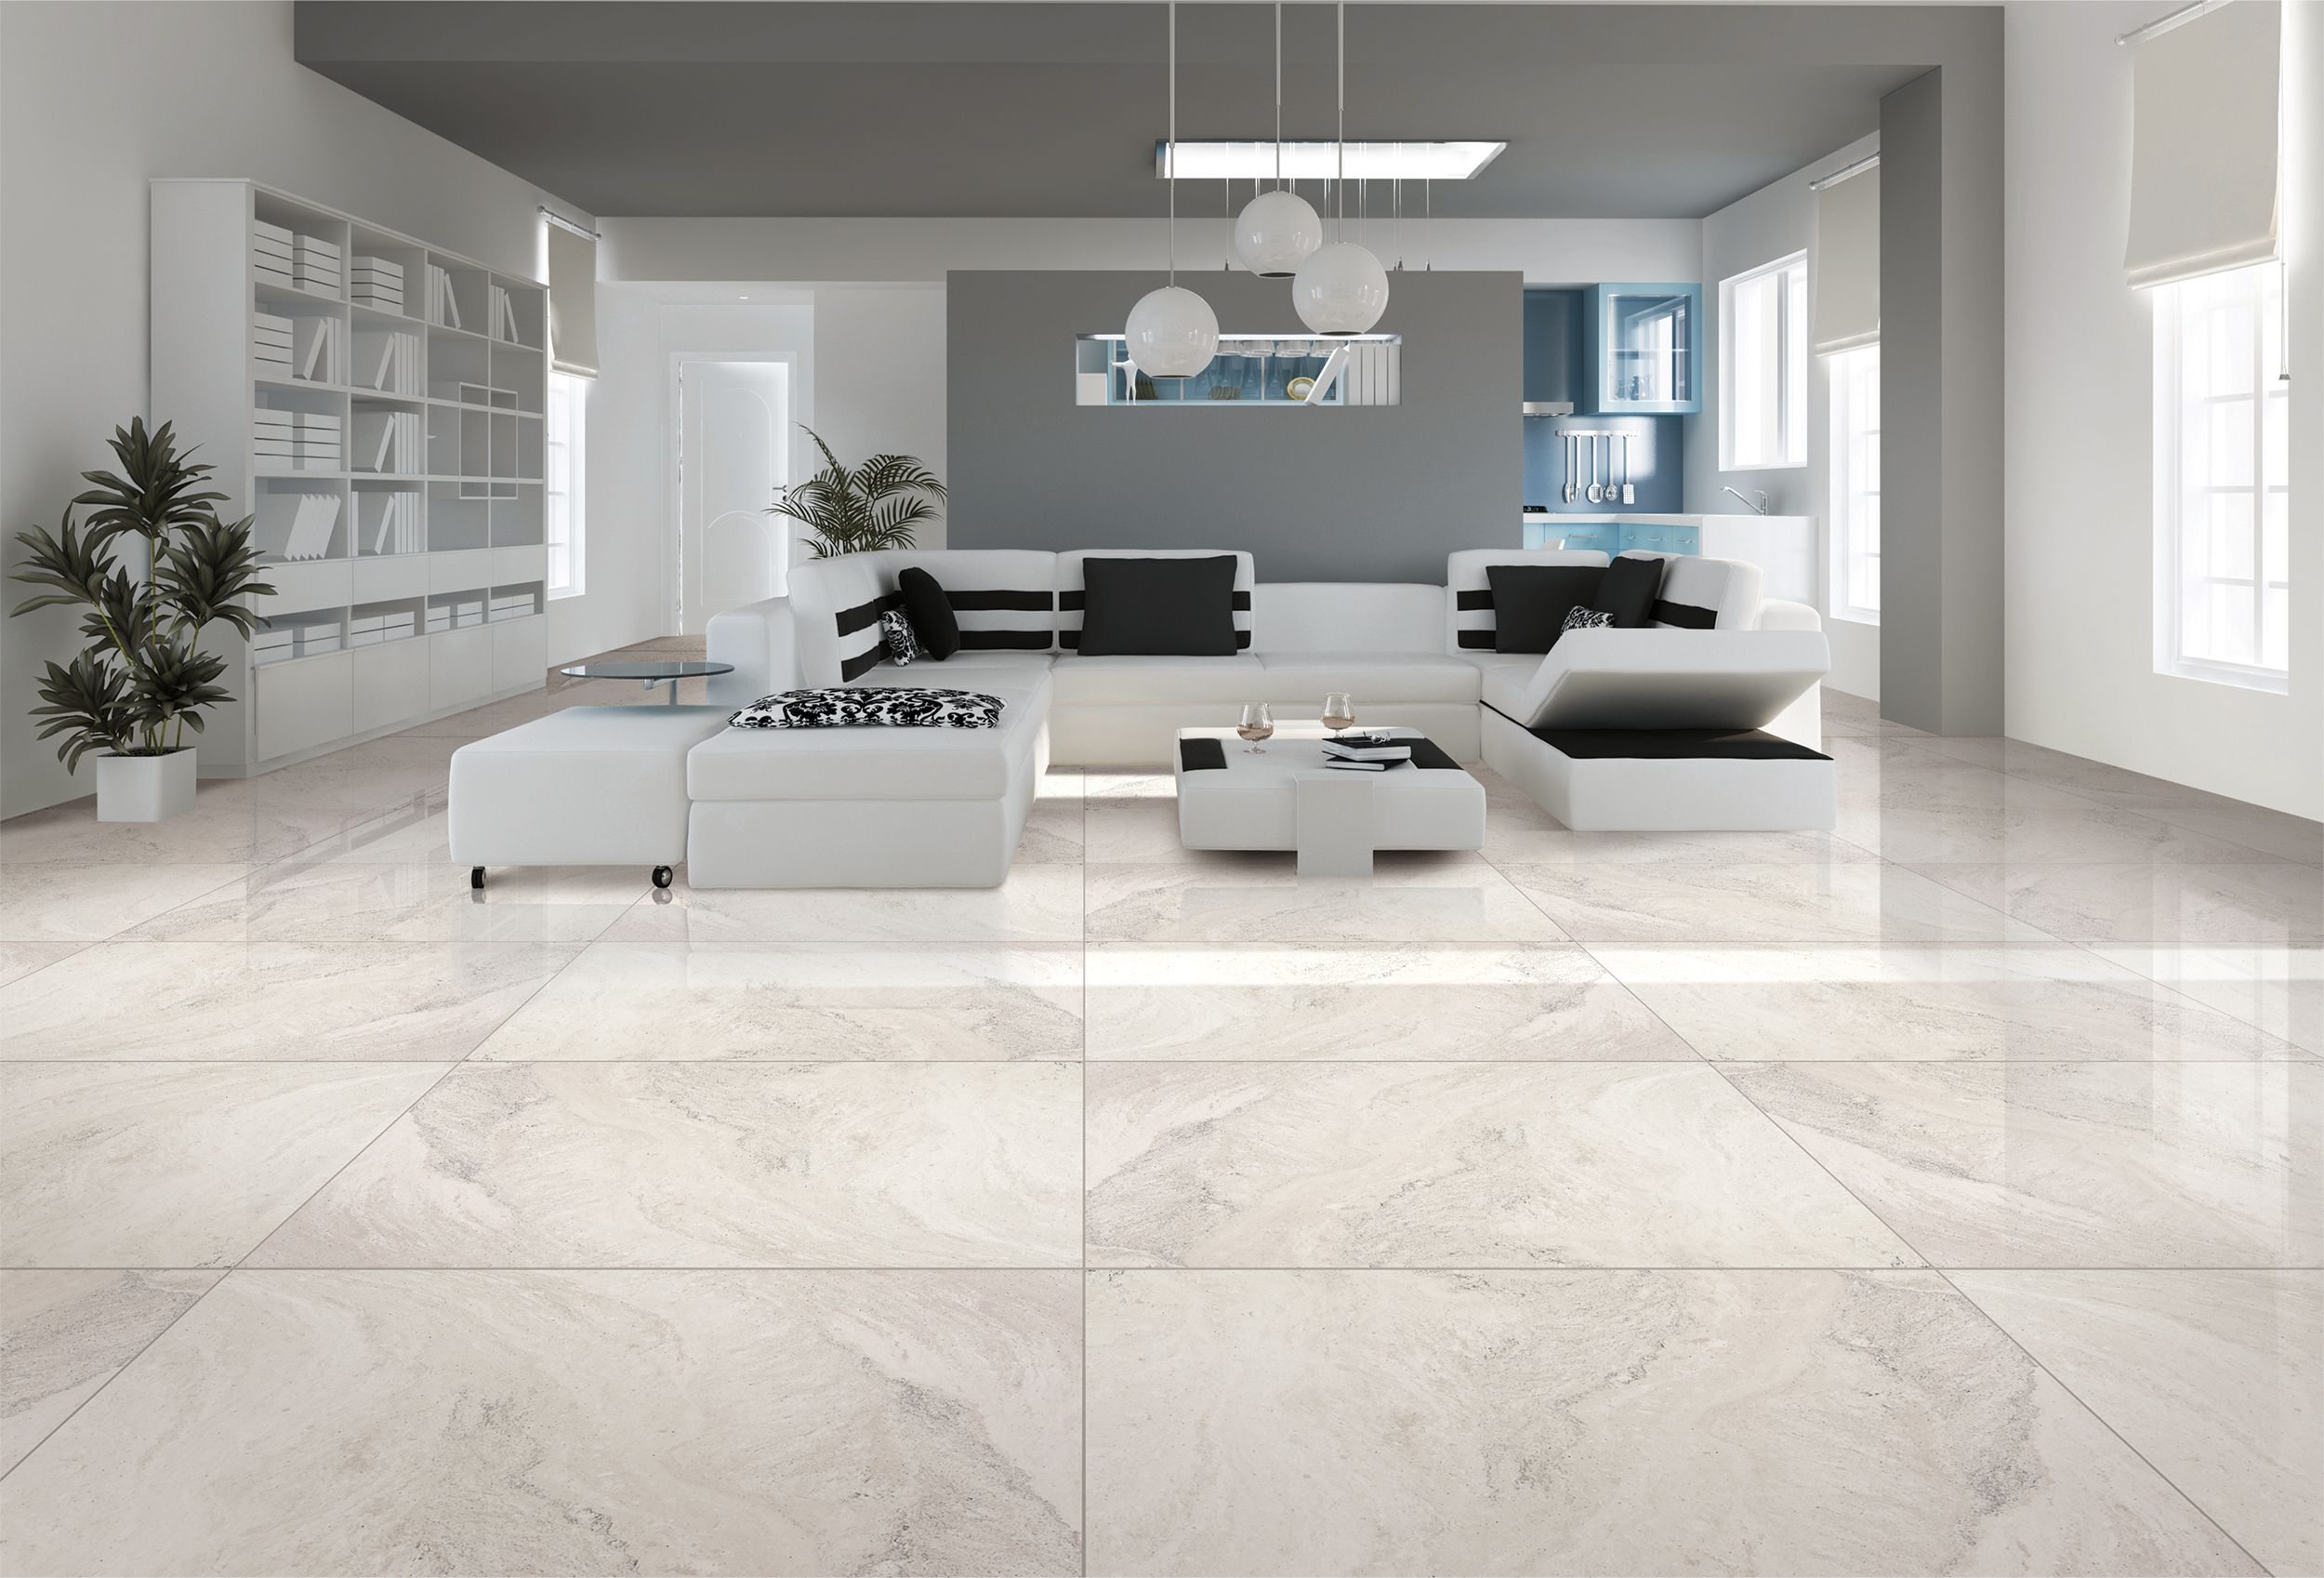 Kajaria Tiles Introduces Its Most Innovative Range Of Large Format